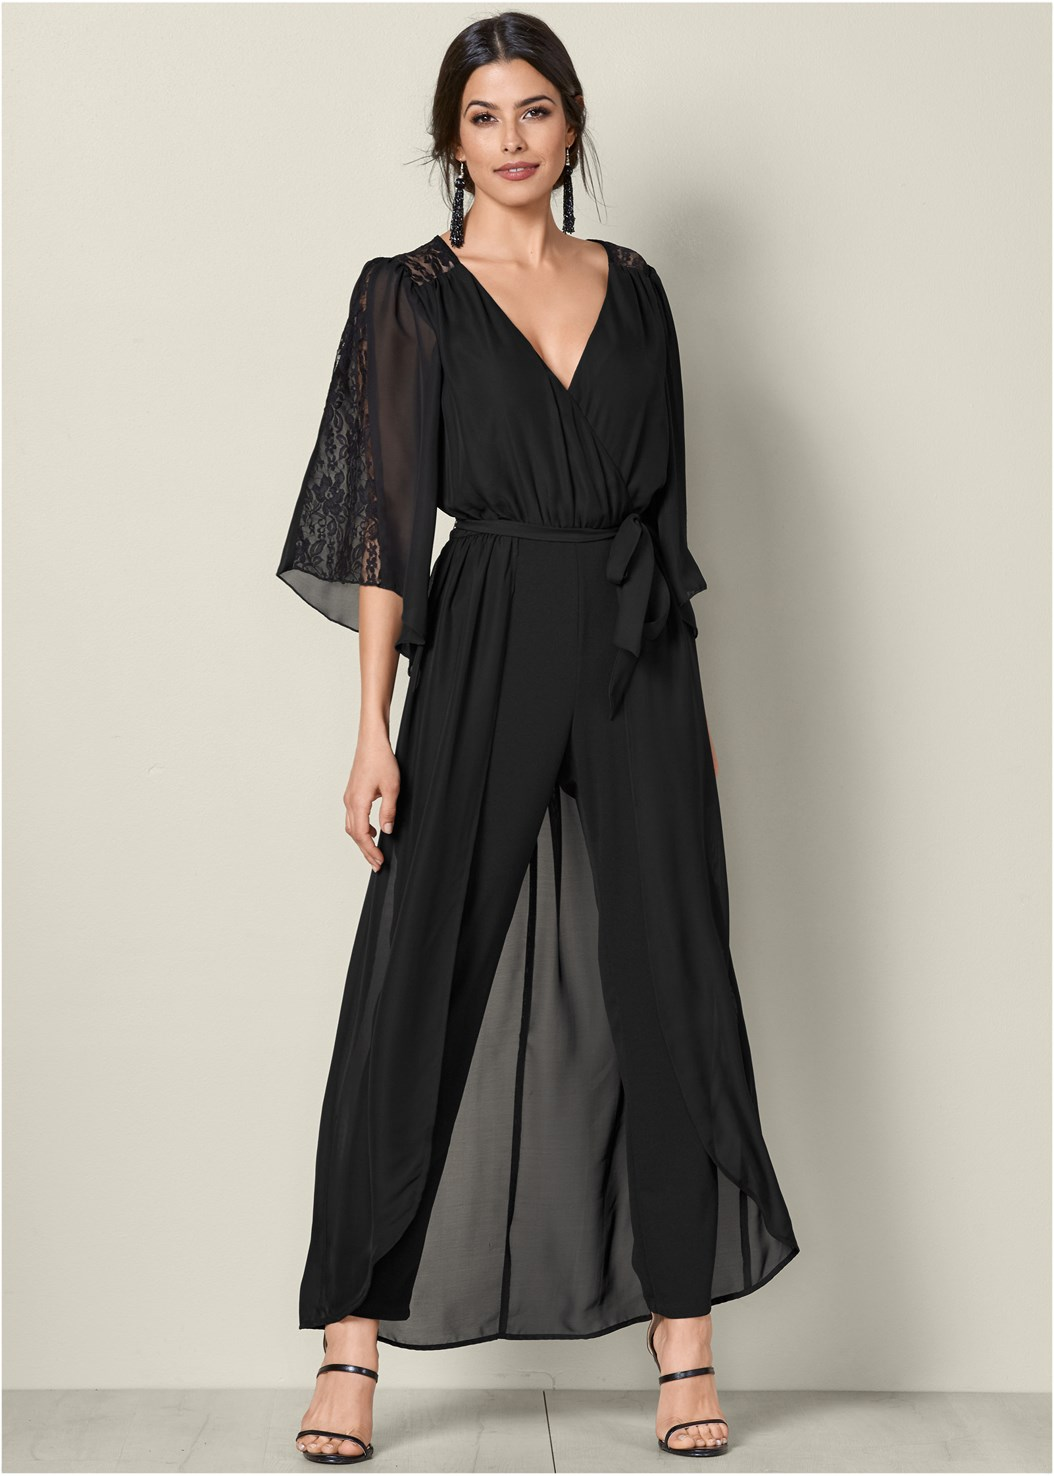 Lace Detail Jumpsuit,High Heel Strappy Sandals